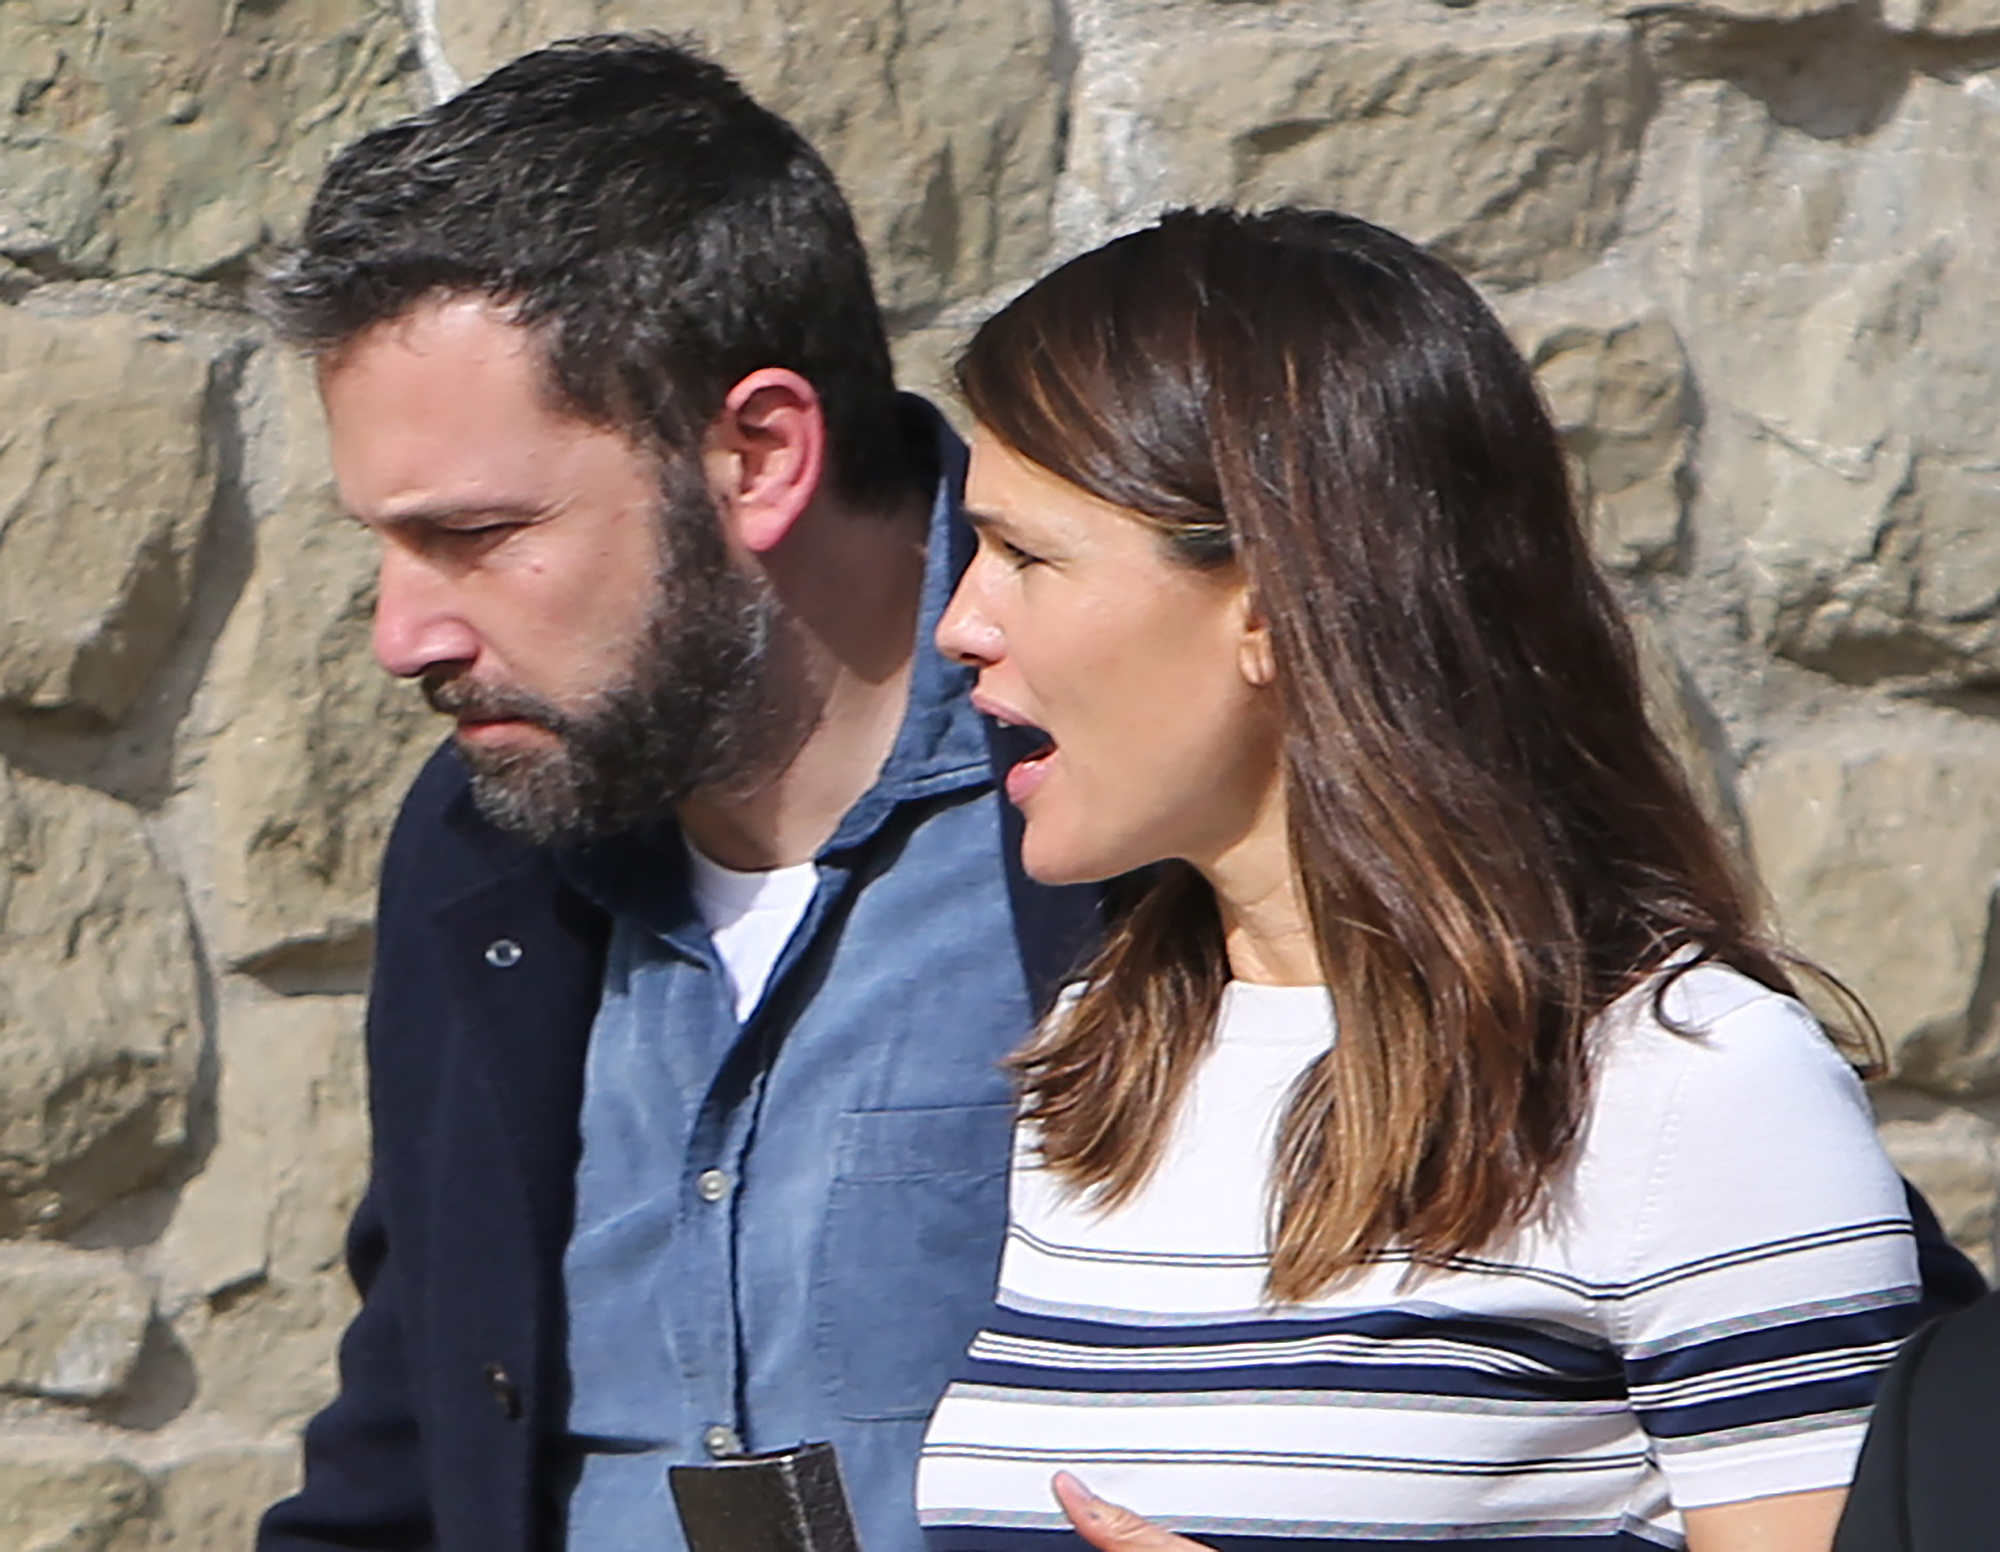 """Ben Affleck and Jennifer Garner Reunite for Family Church Outing 2 Months After Finalizing Divorce - The former couple finalized their divorce in November 2018 , more than three years after announcing their separation. A source previously told Us that Garner was not """"willing to settle the custody issues until she [was] 100 percent certain that [Affleck was] clean."""" (Affleck completed a 40-day rehab stay for alcoholism in October.)"""